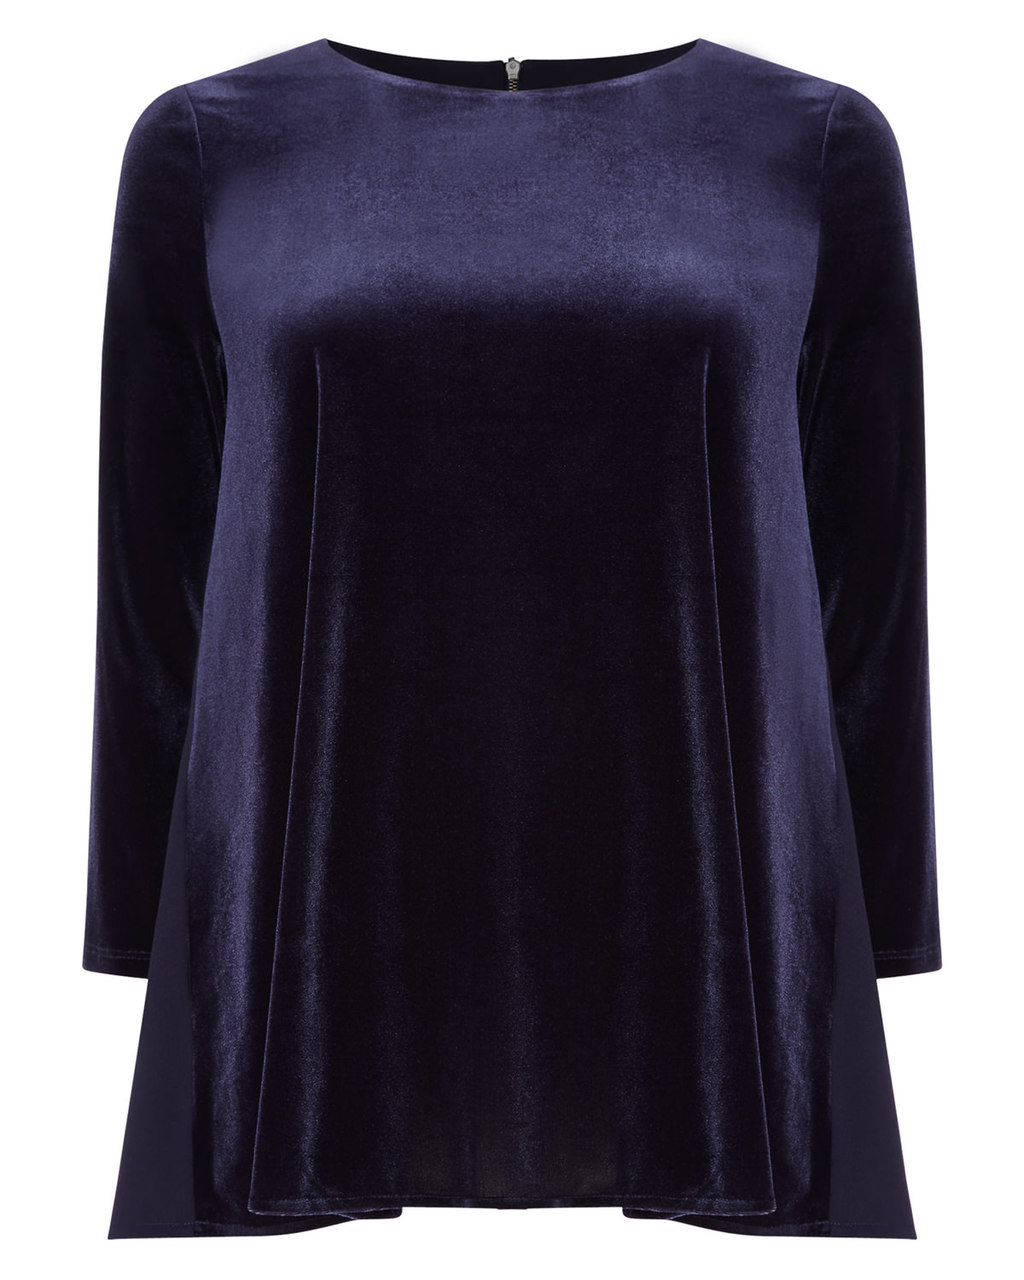 Delia Velvet Blouse - pattern: plain; style: blouse; predominant colour: navy; occasions: casual, evening; length: standard; fibres: polyester/polyamide - stretch; fit: loose; neckline: crew; sleeve length: long sleeve; sleeve style: standard; pattern type: fabric; texture group: velvet/fabrics with pile; season: a/w 2015